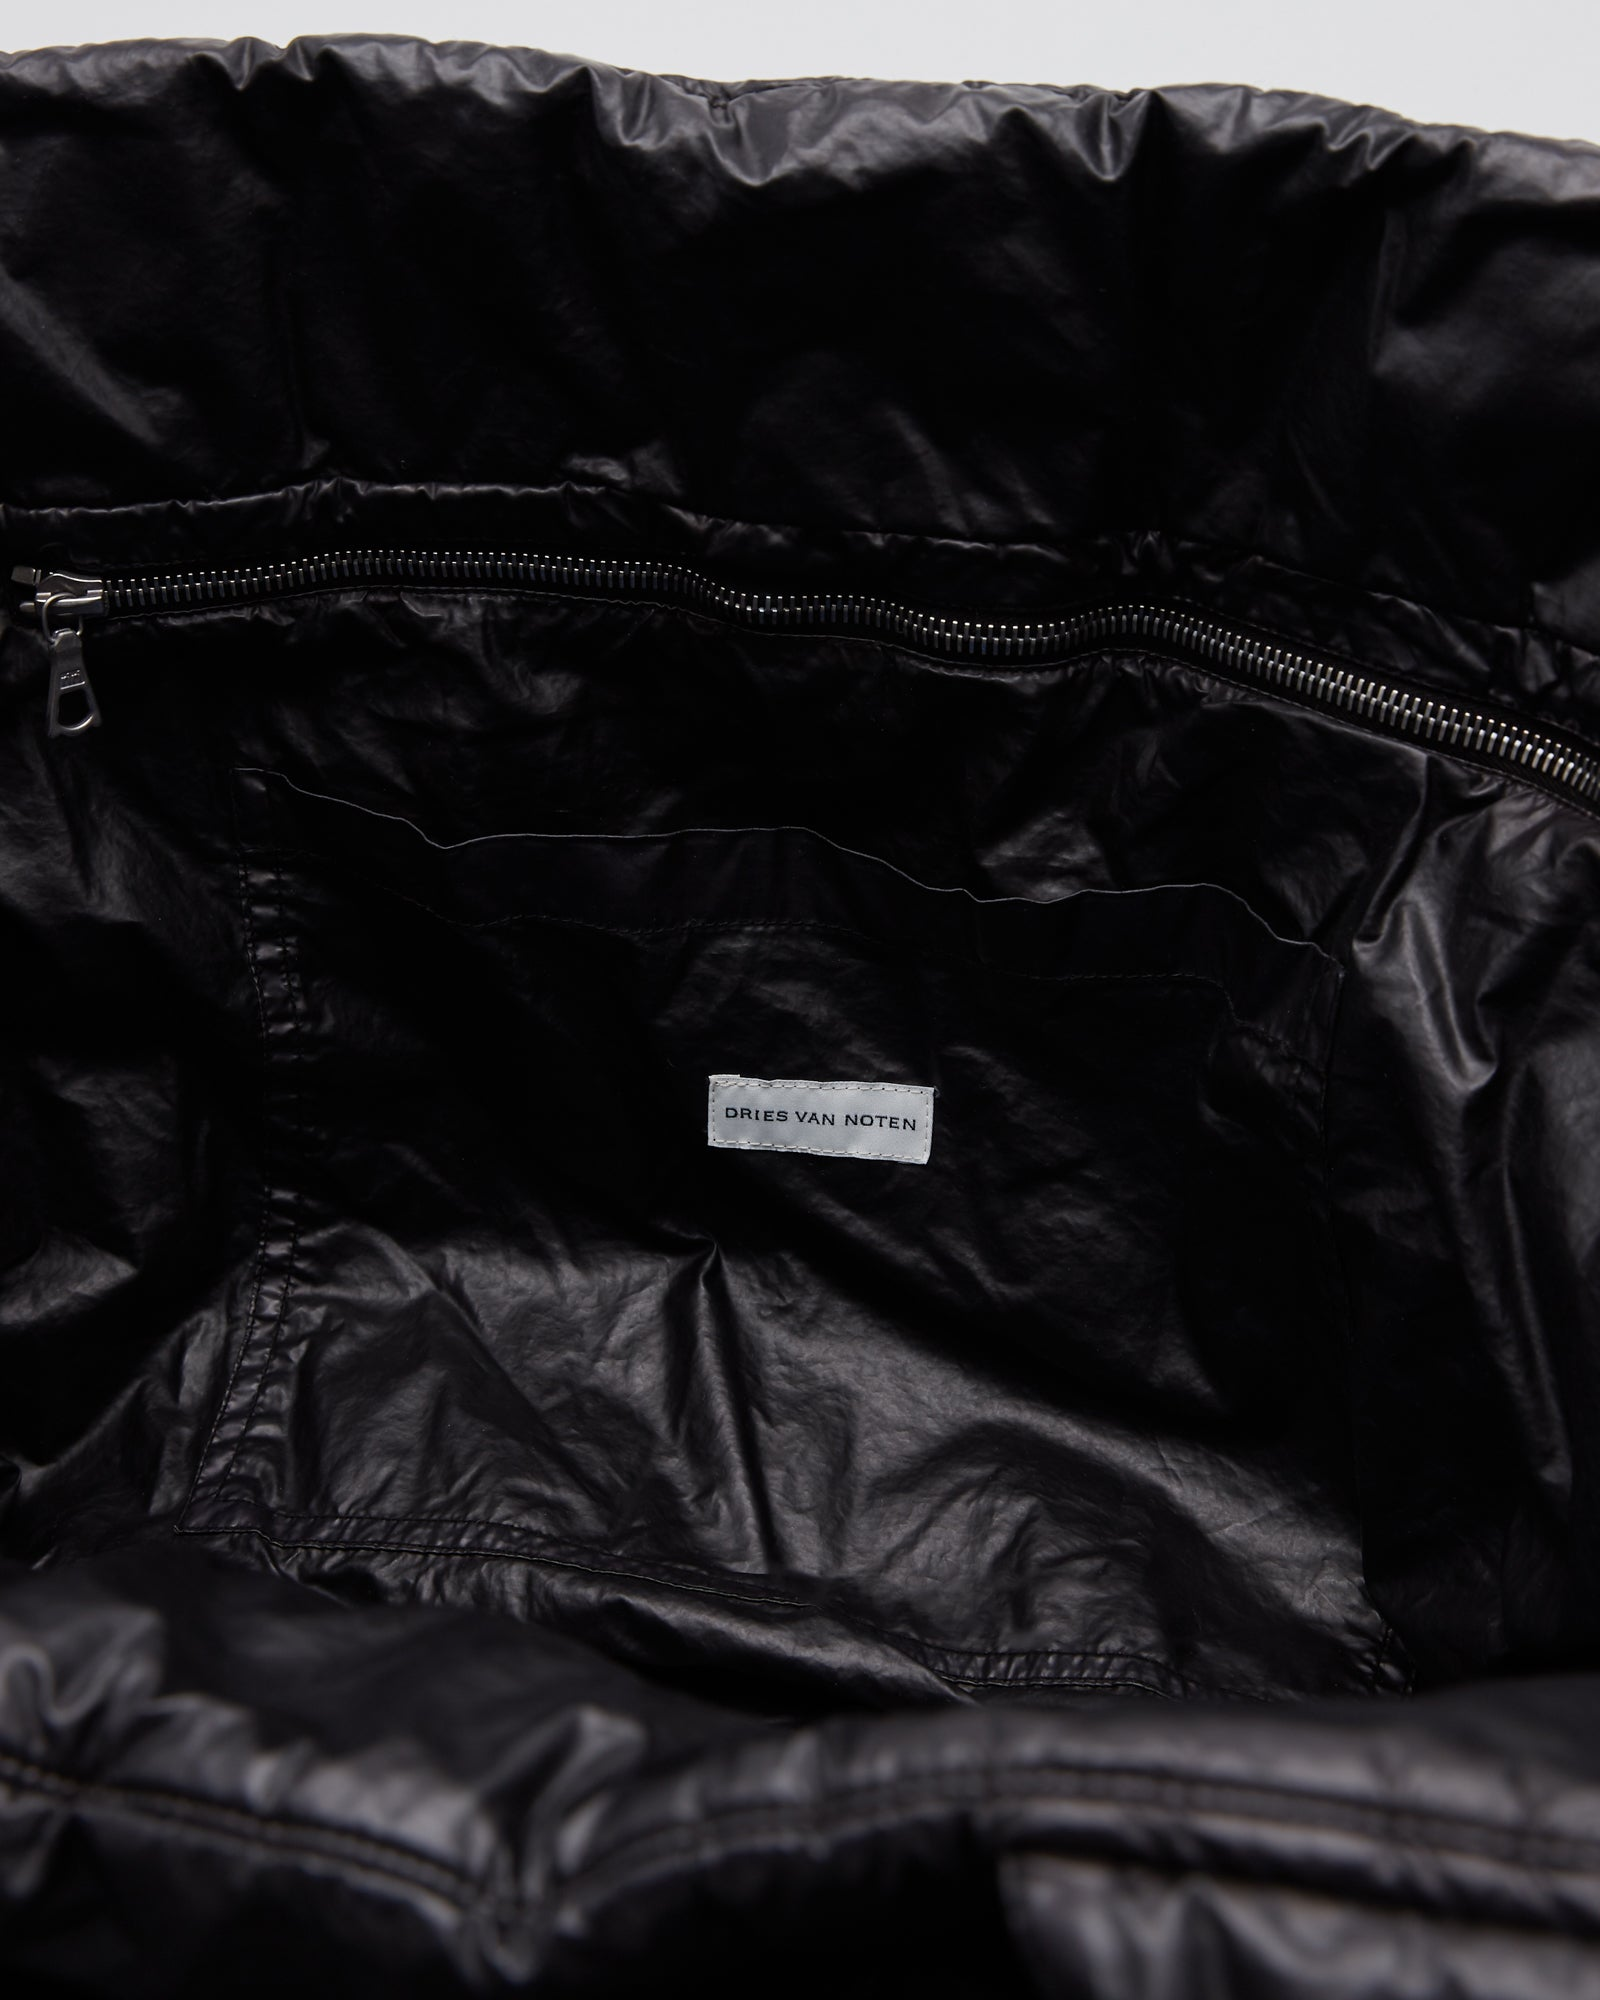 BM27 Bag in Black